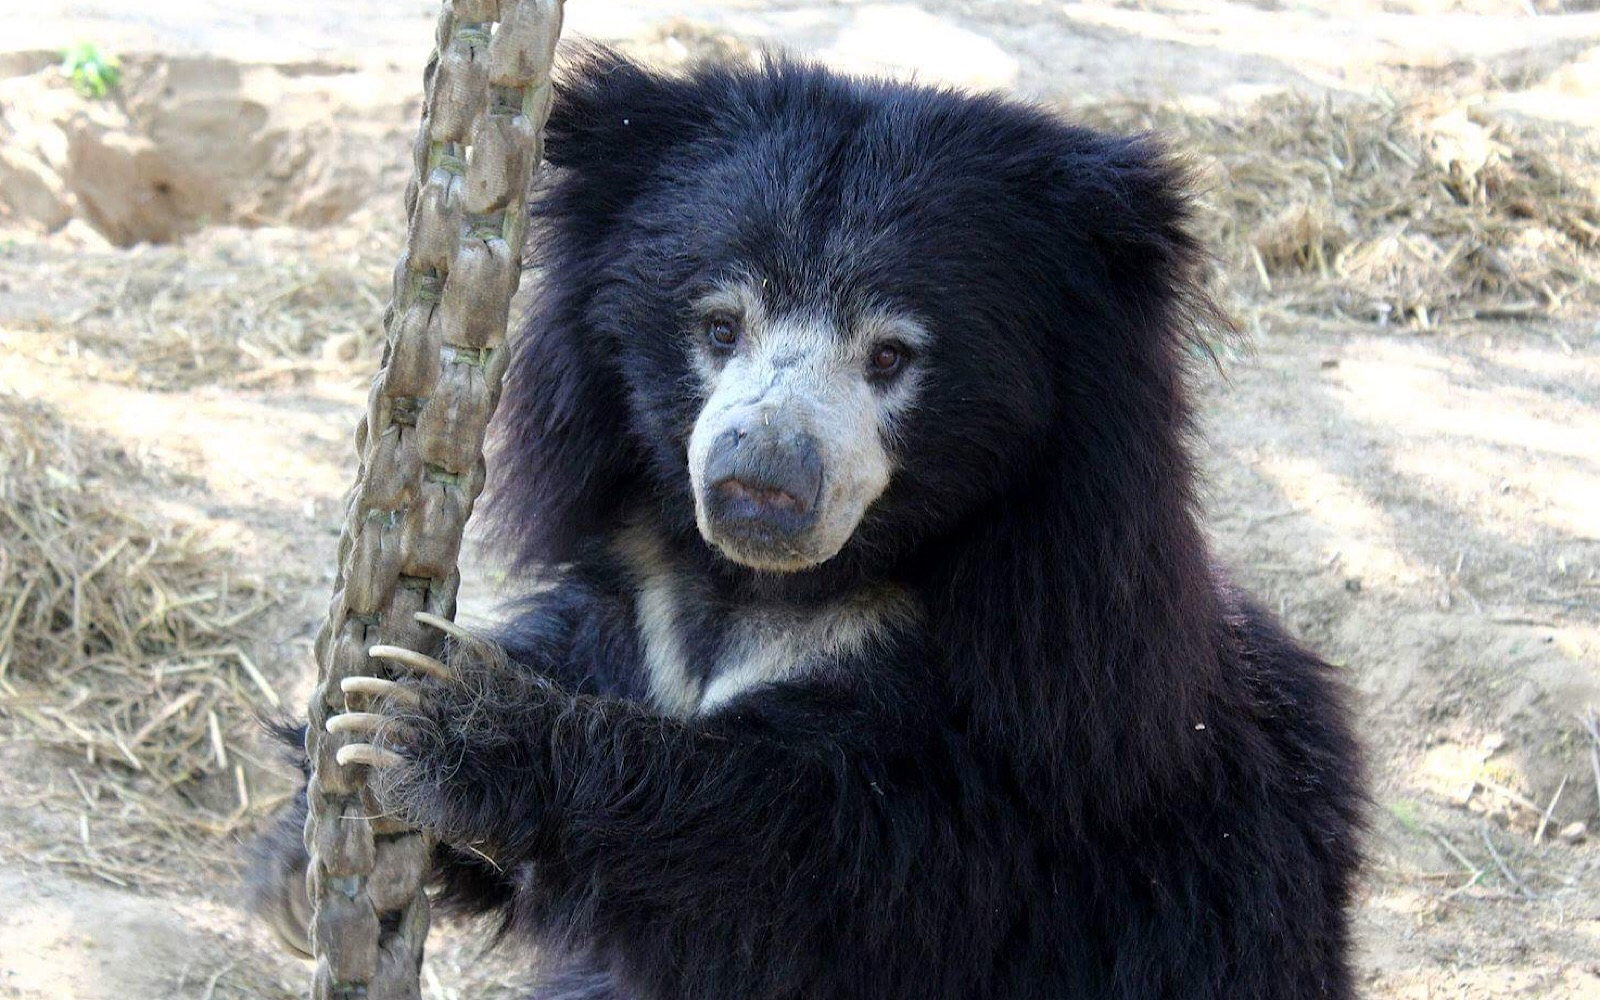 10 Reasons Why Sloth Bears Are The Cutest - One Green Planet